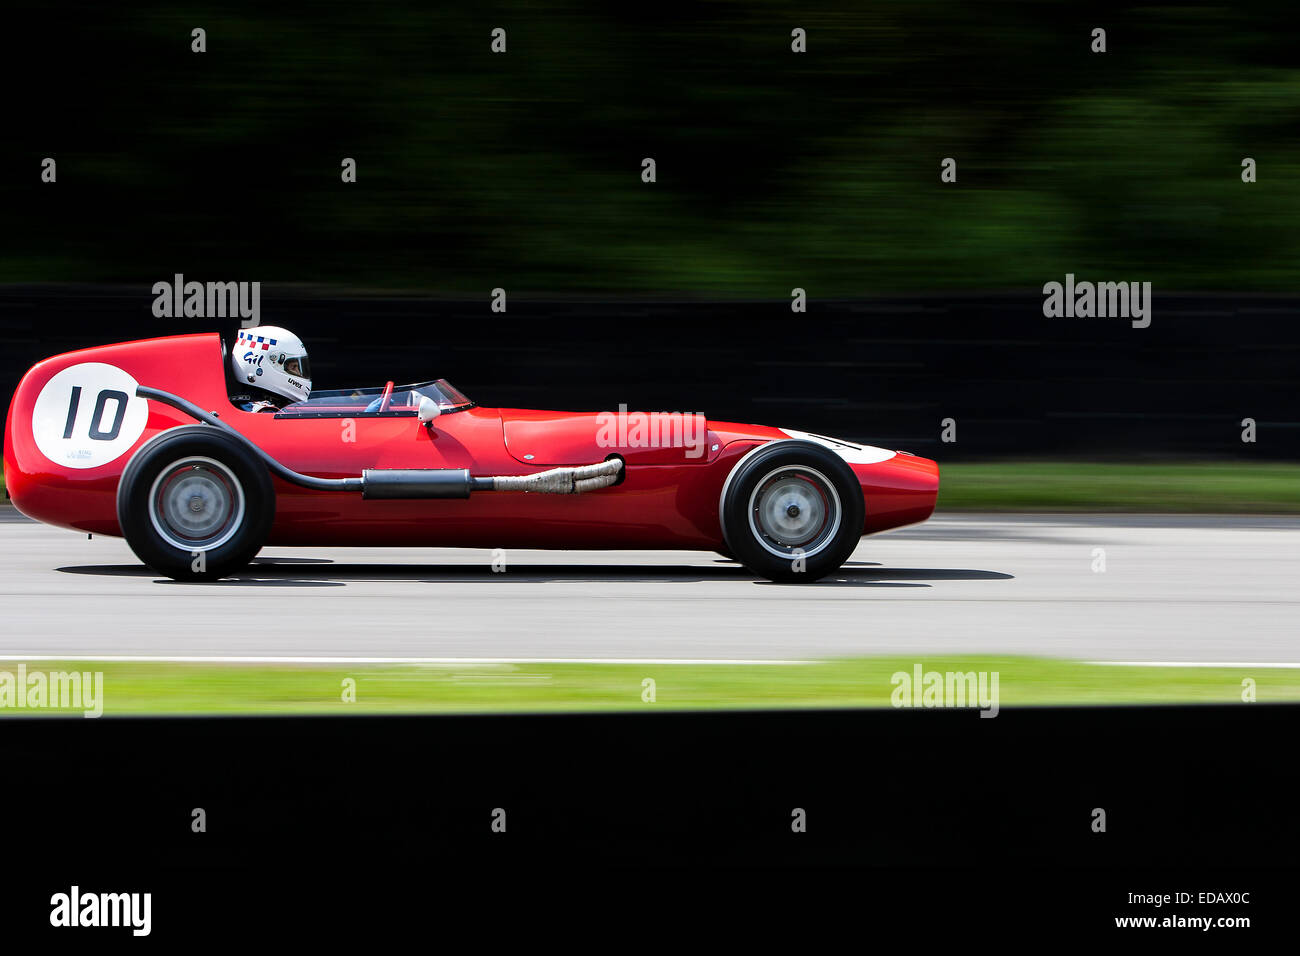 Gil Duffy drives his Bond FJ single seater at the 2013 Masters Historic meeting at Brands Hatch, 2013 - Stock Image